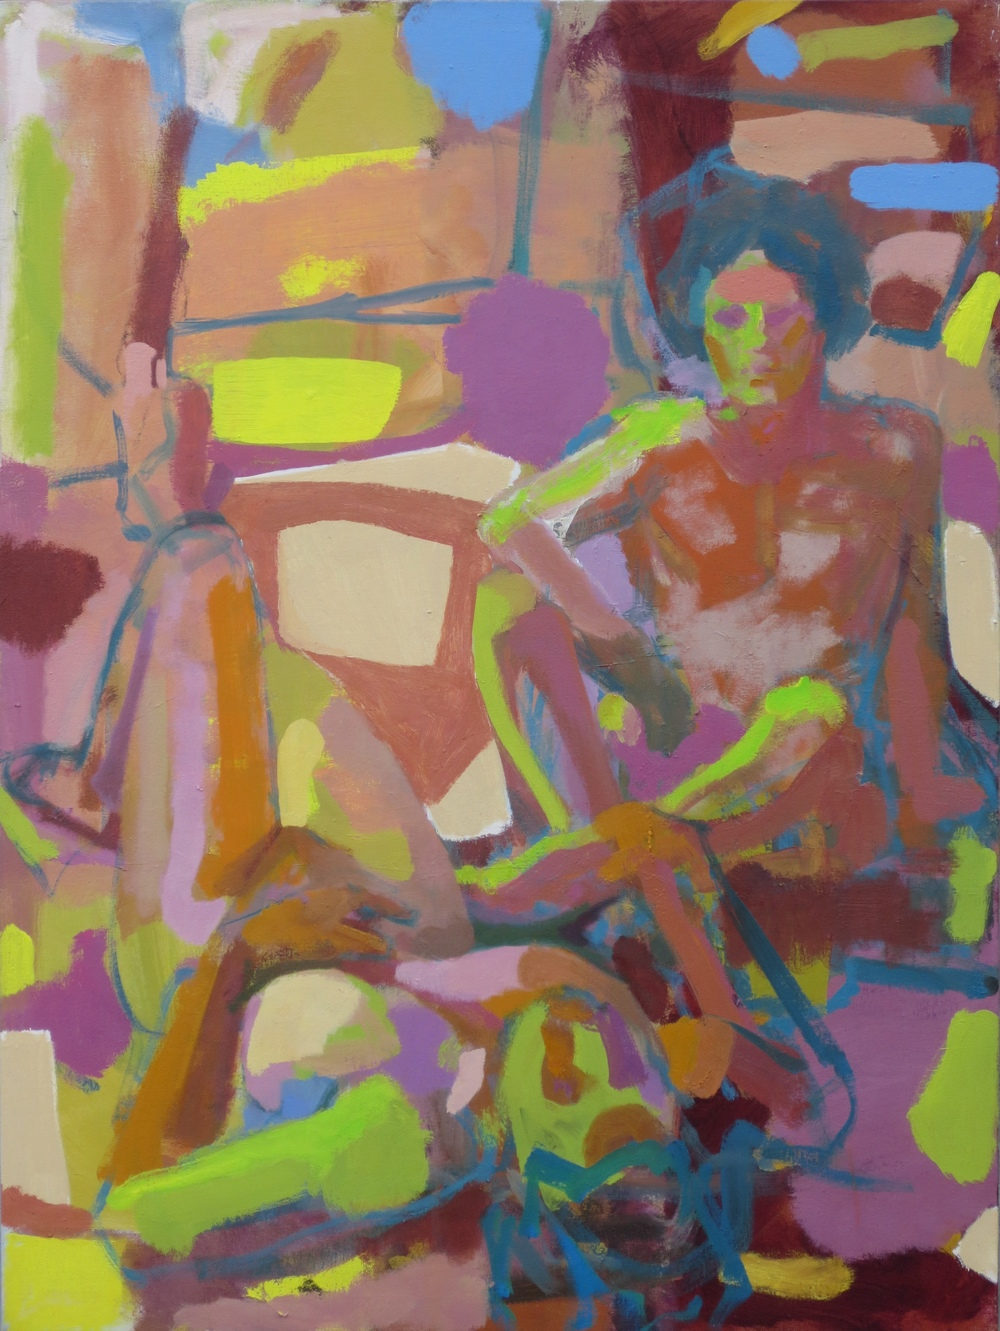 Figures in Landscape, 2015